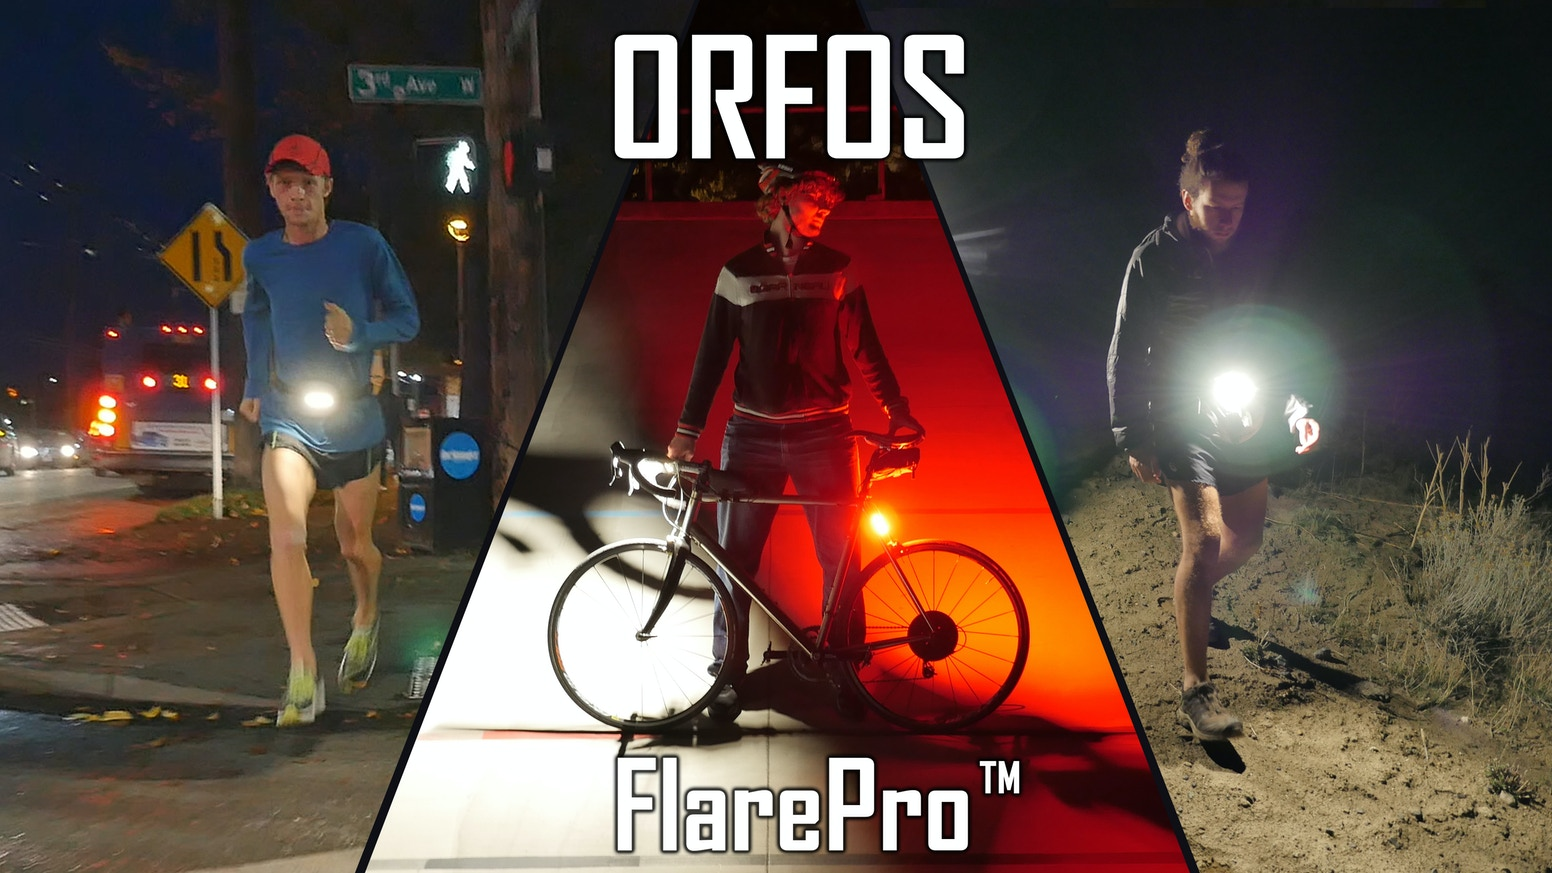 The Ultimate 360° lights for all your activities. Turn night into day with the World's Brightest LED flares. Hike. Bike. Run. etc.